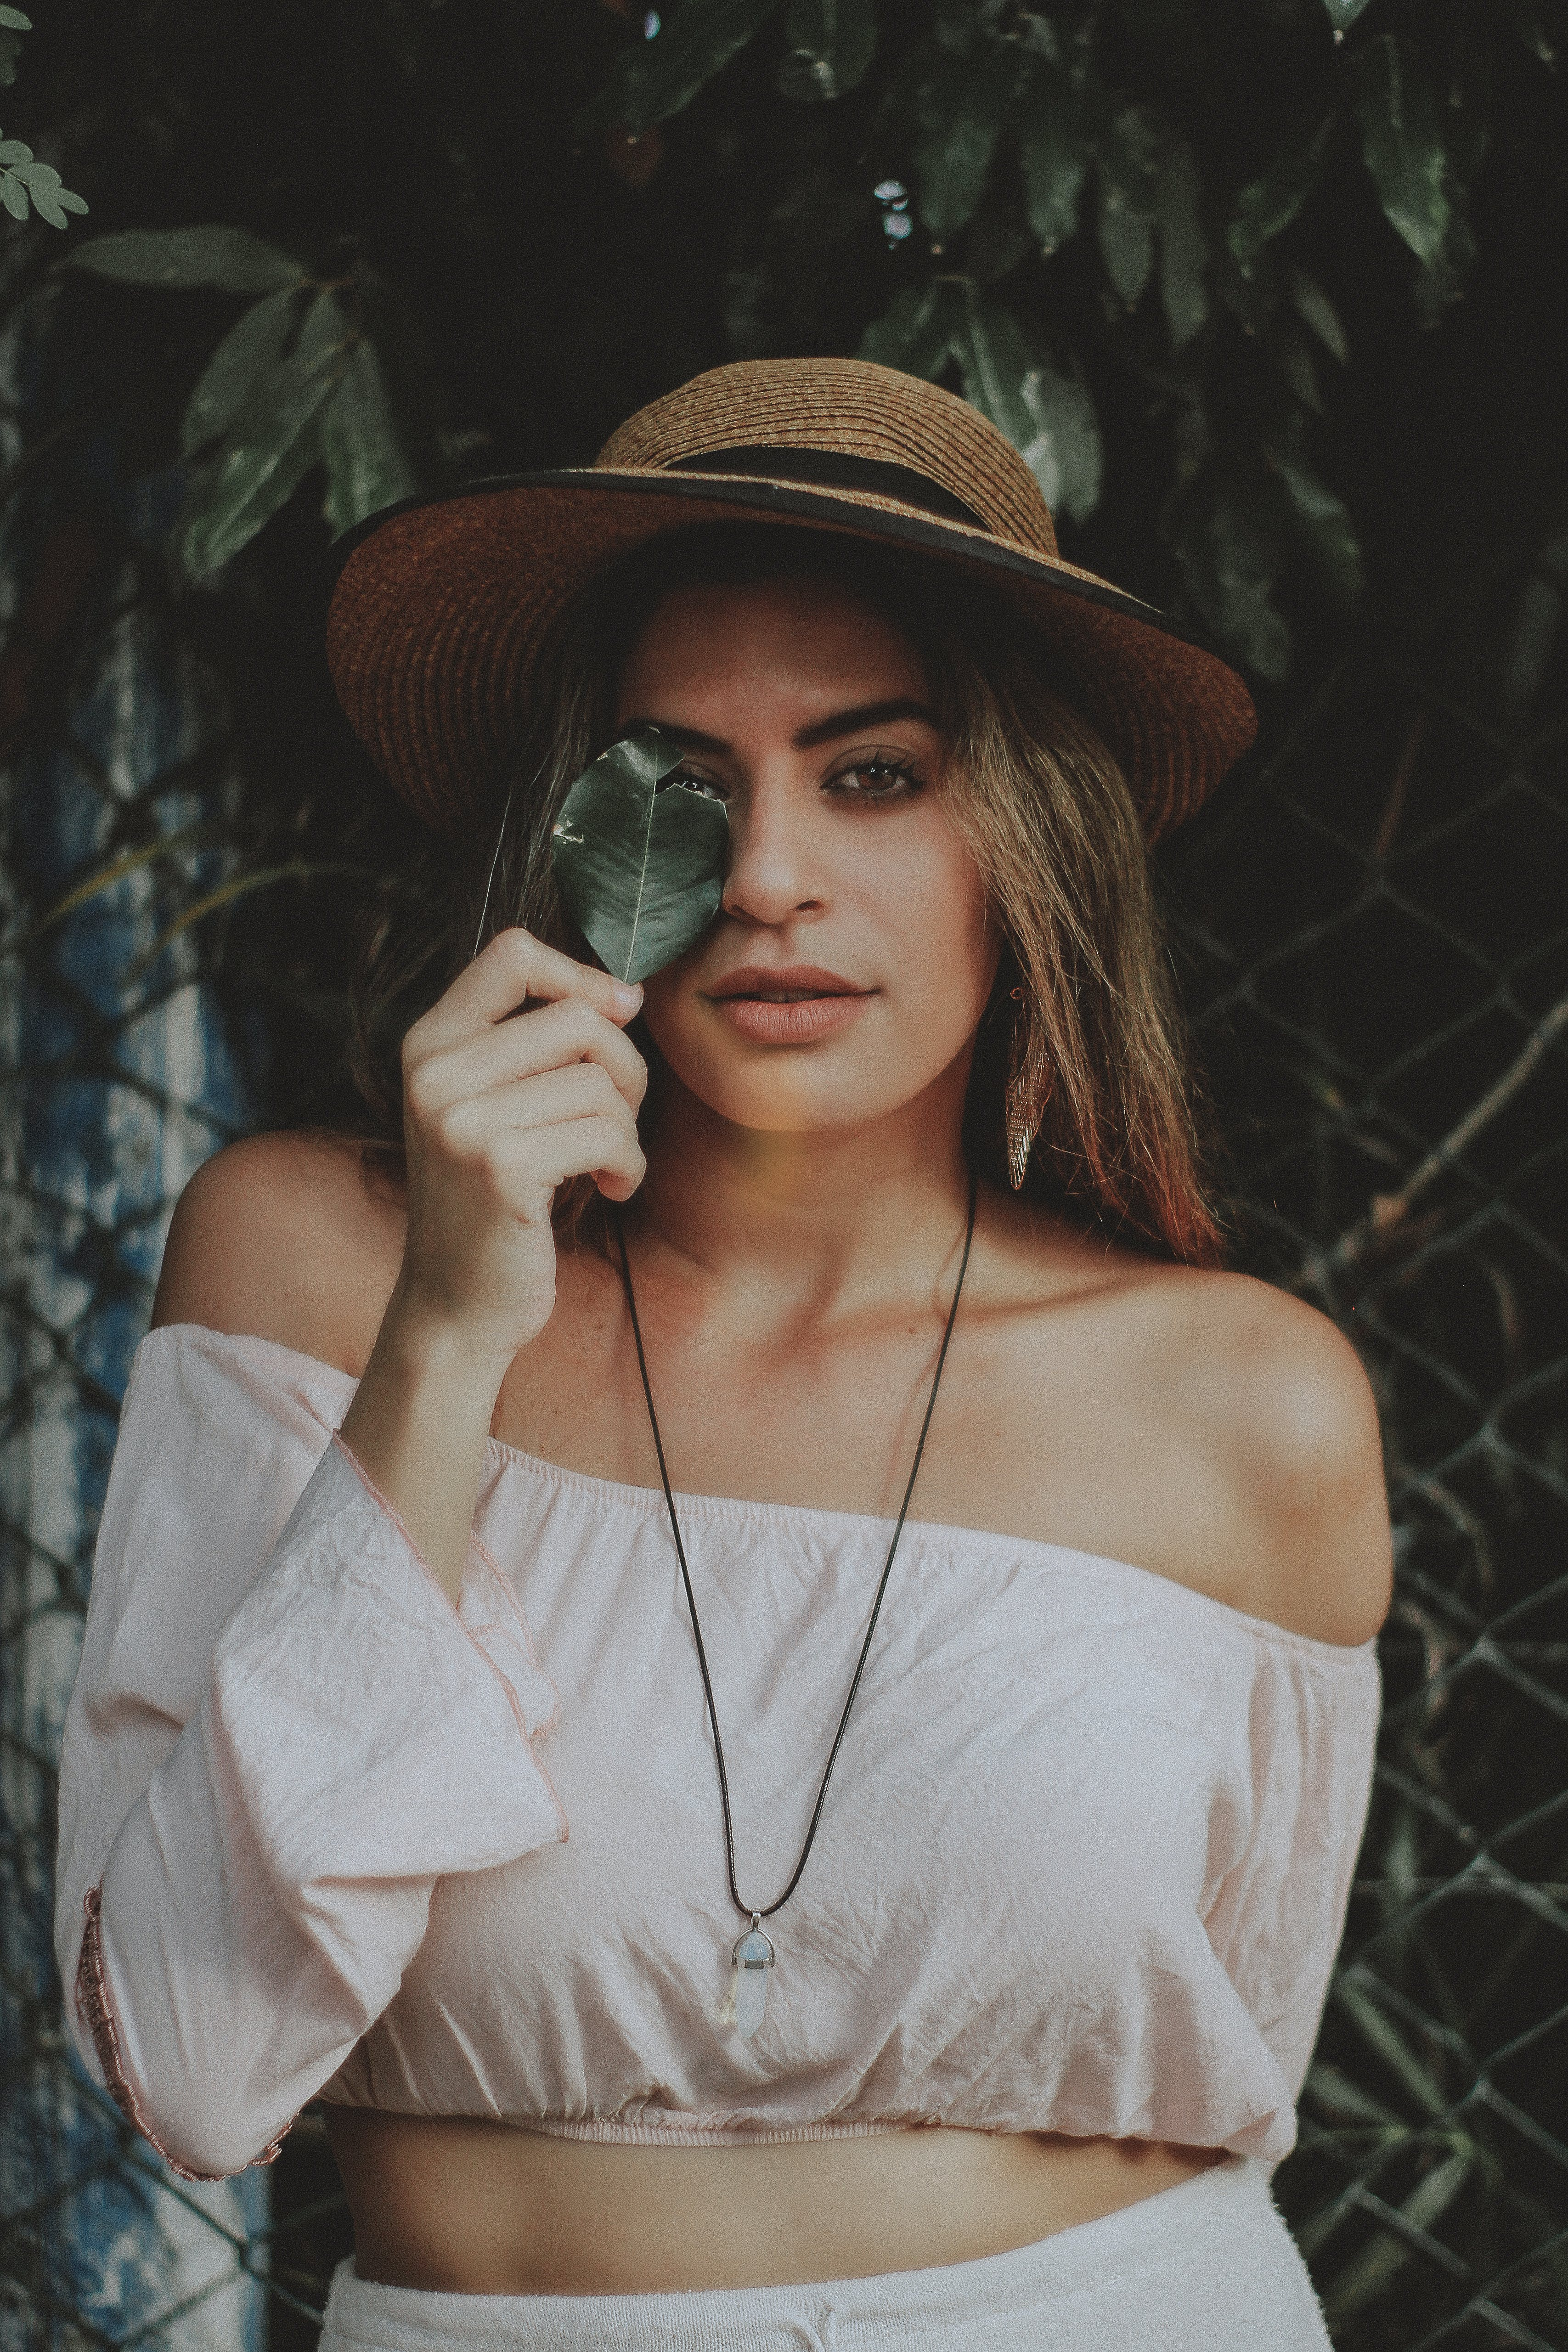 Woman in Crop Top Holding Leaf Covering Right Eye